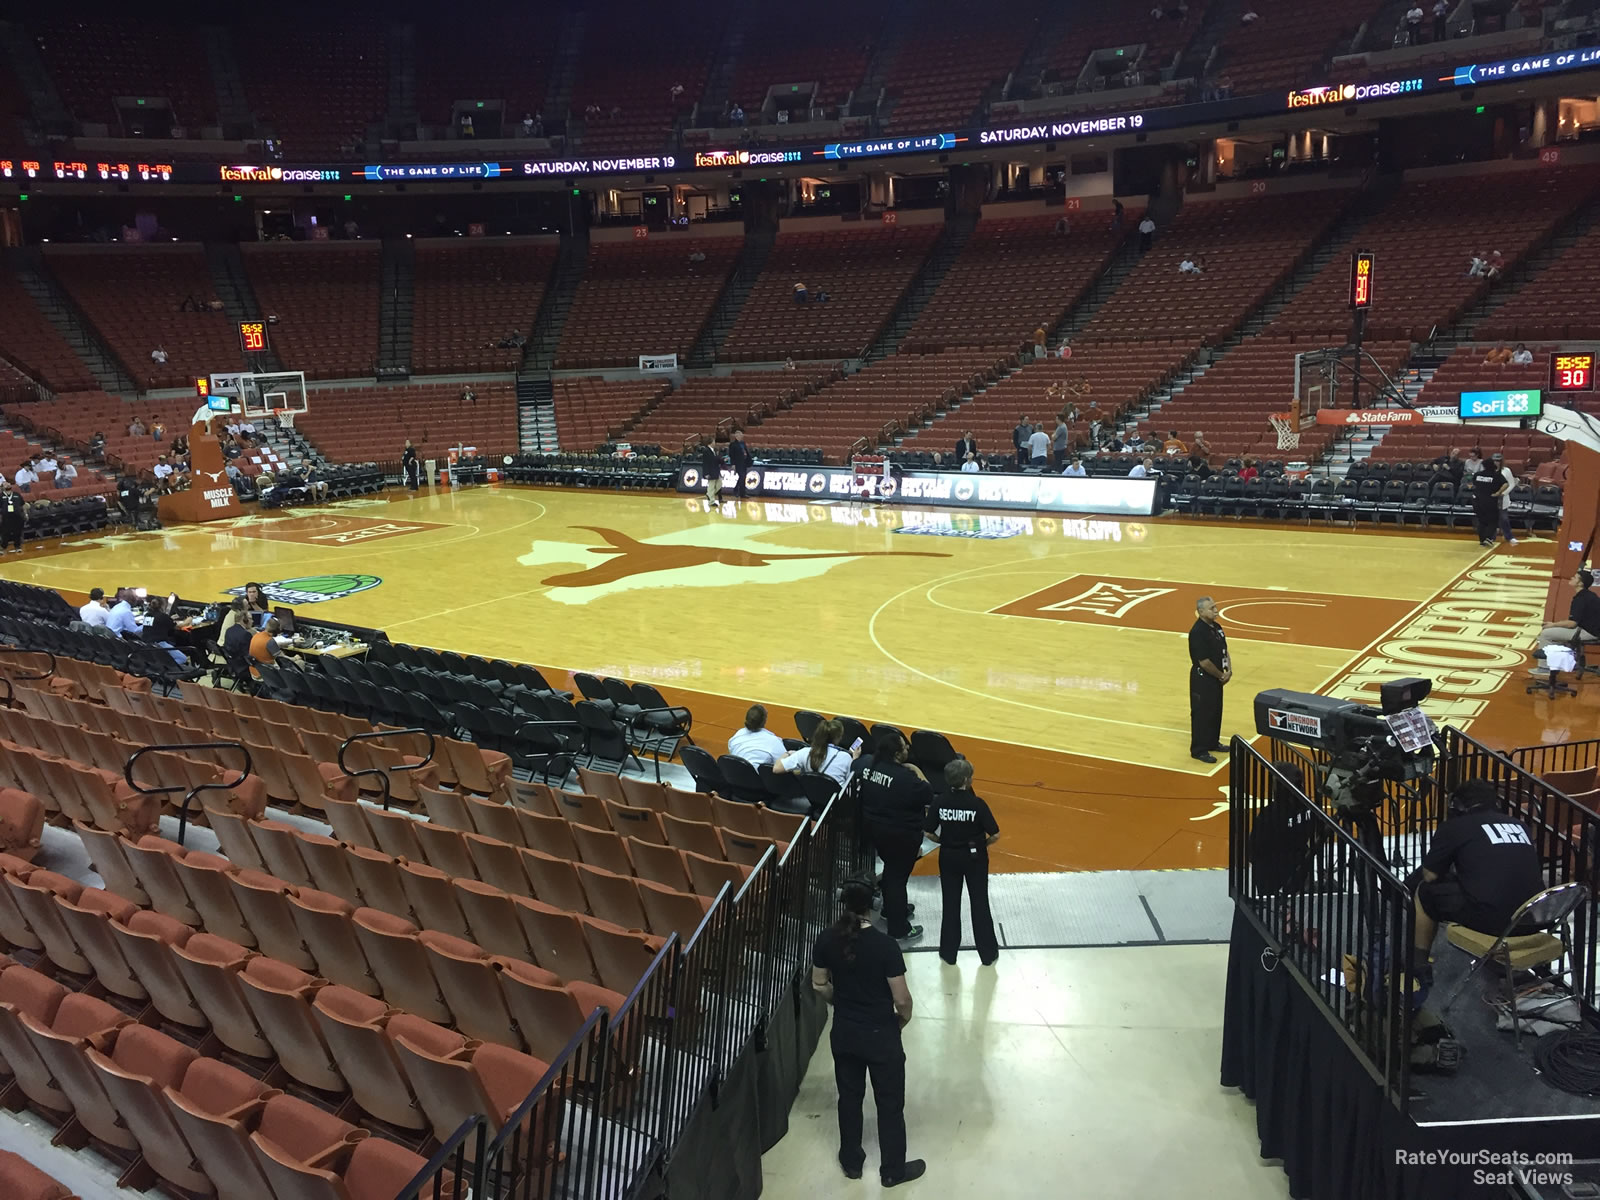 Seat View for Frank Erwin Center Section 38, Row 17